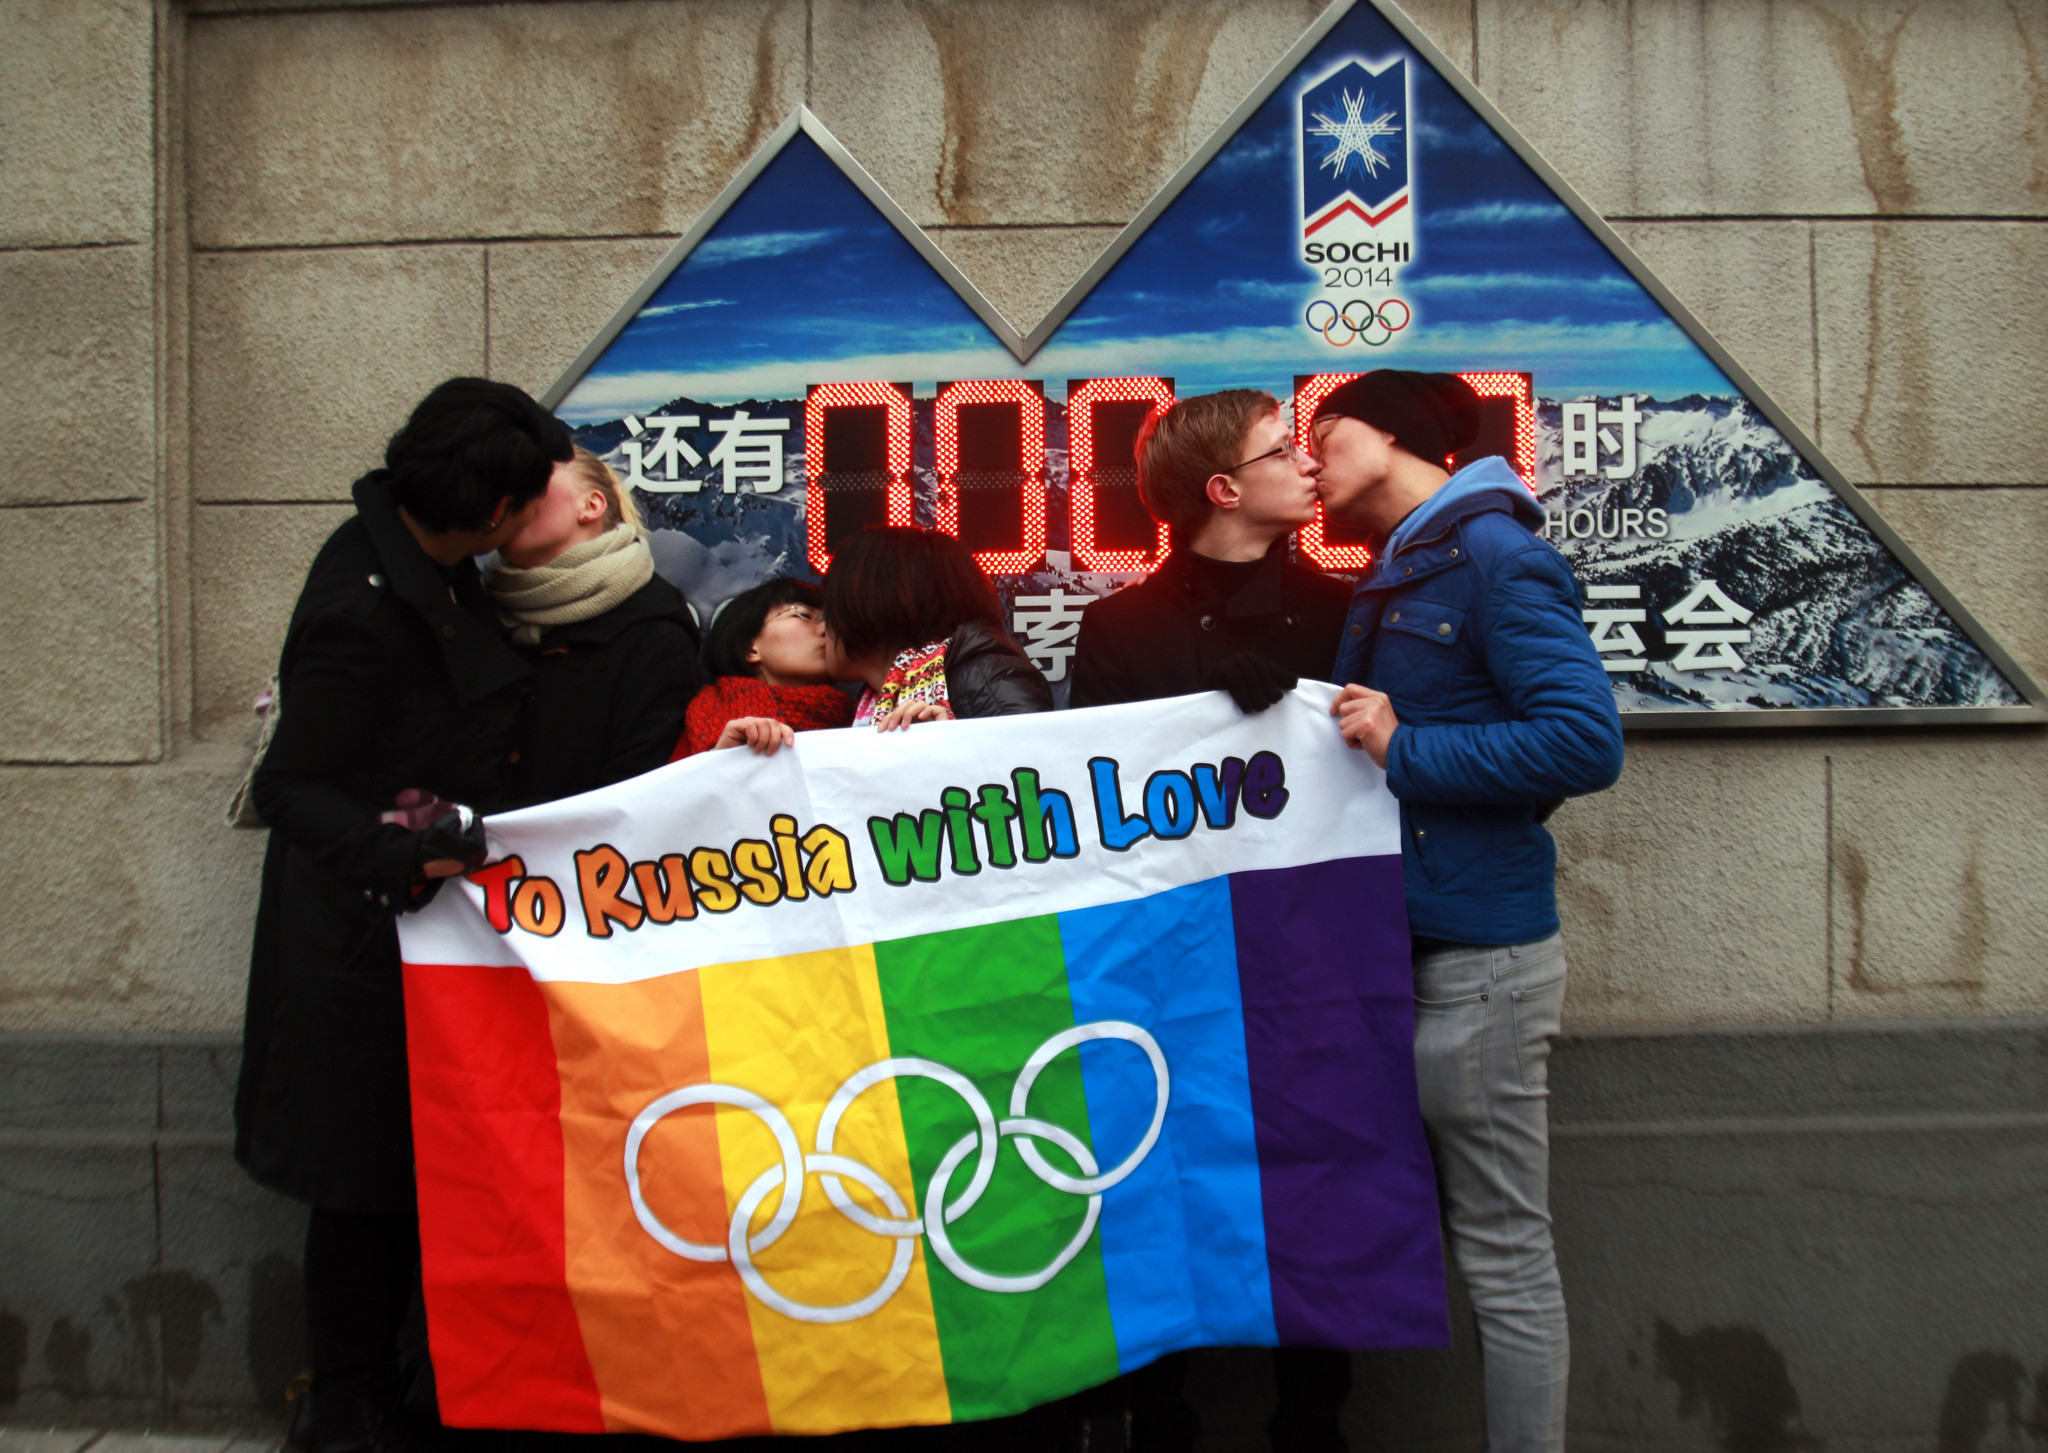 Pro-gay rights protesters demonstrate during Sochi 2014 ©Getty Images